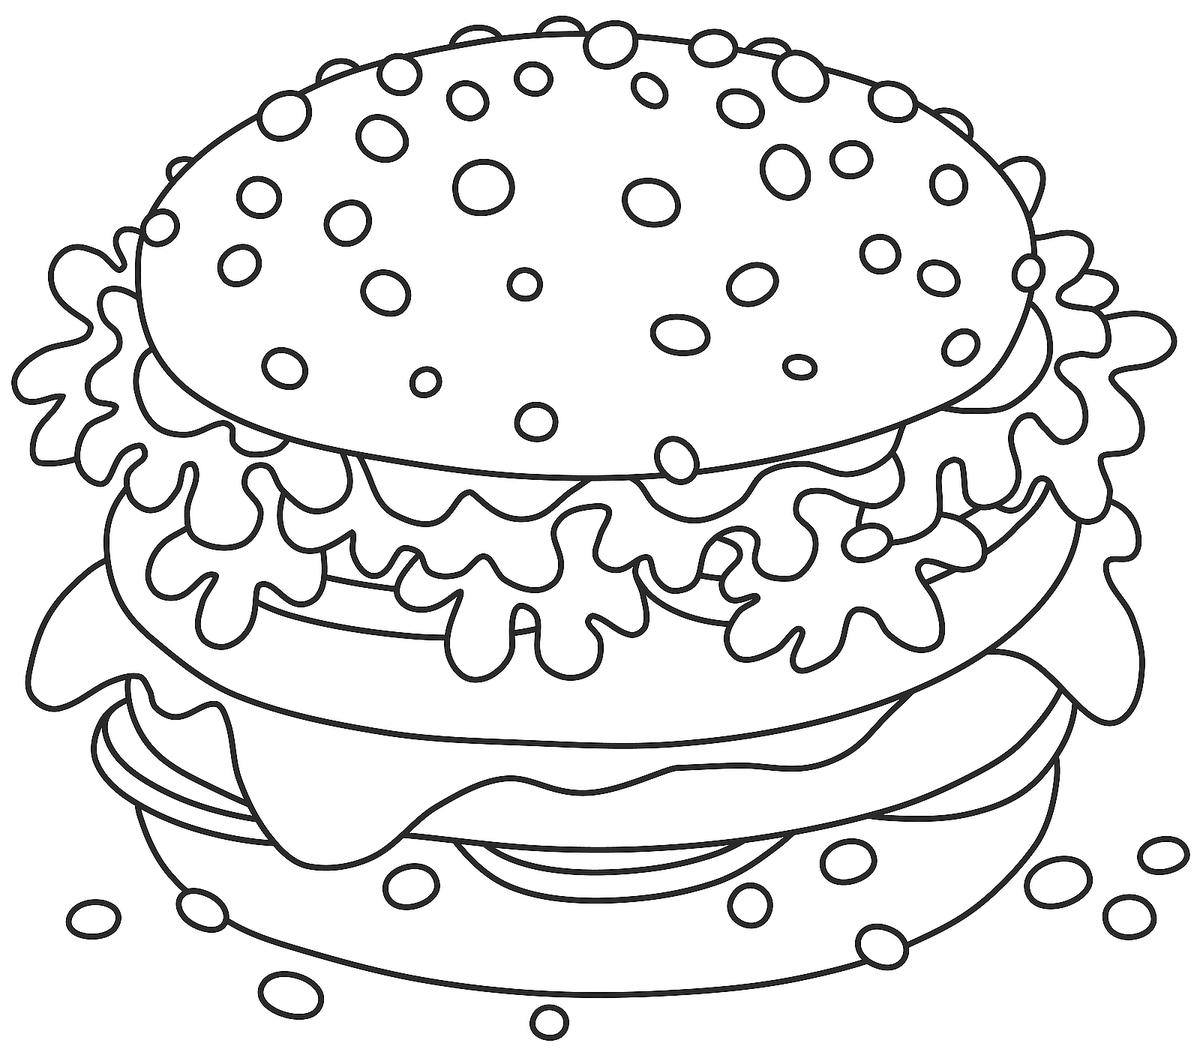 coloring pages food different food coloring pages coloring pages to download food coloring pages